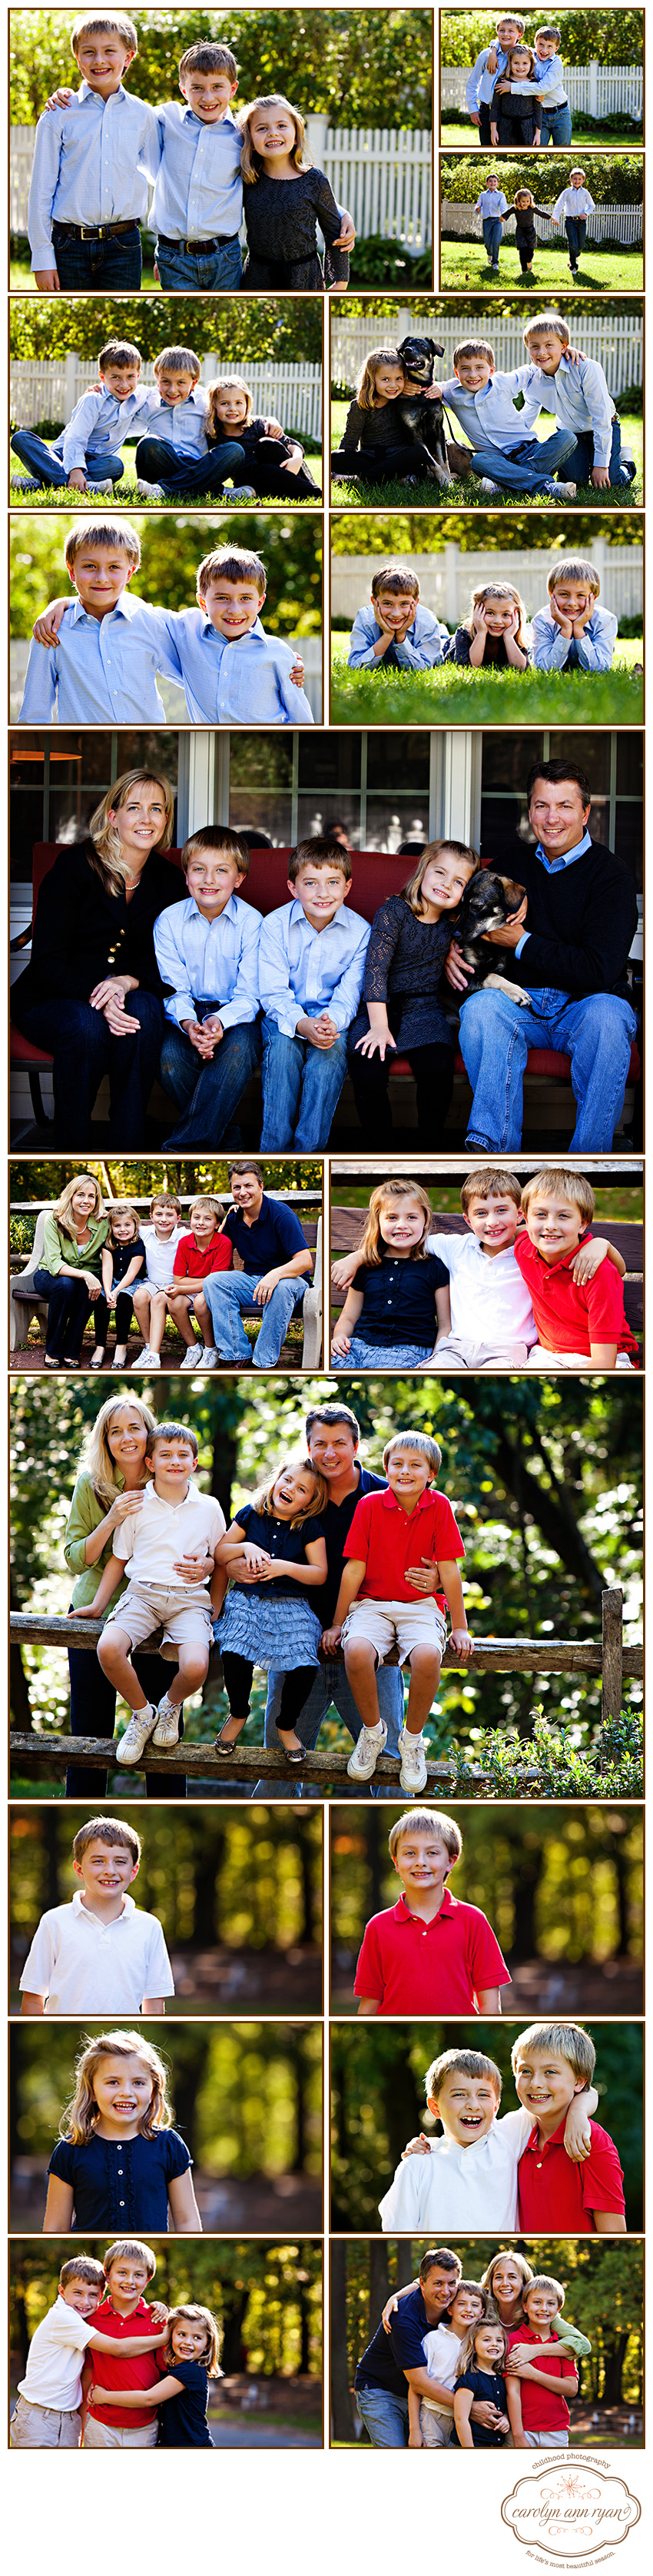 Vibrant Waxhaw, NC Family Portrait Session by family photographer Carolyn Ann Ryan